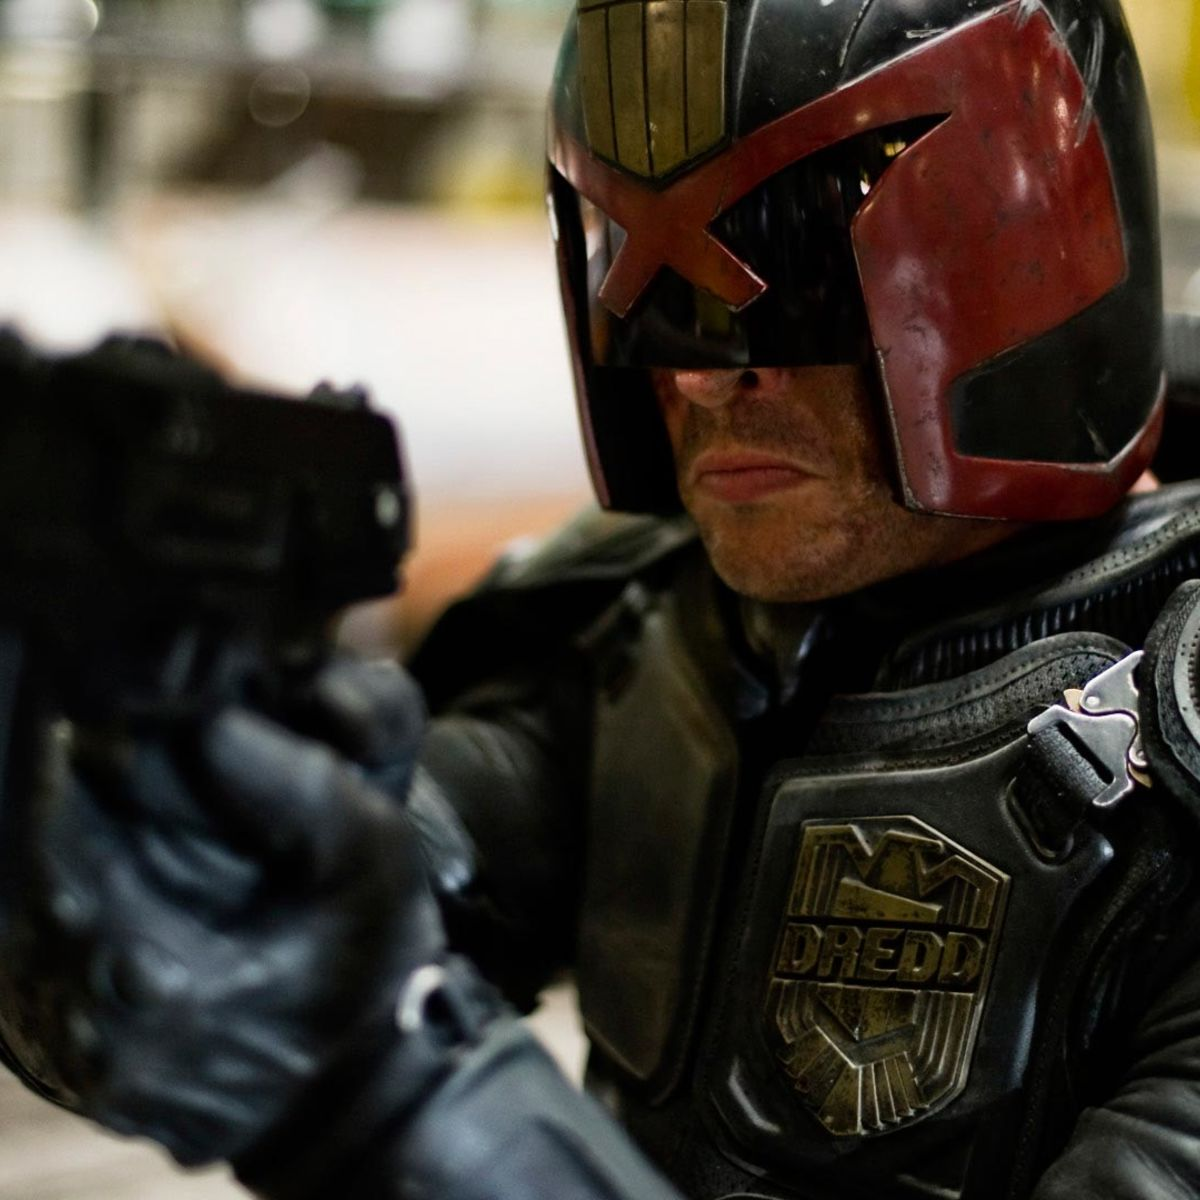 dredd-karl-urban-has-a-message-for-dredd-fans-about-the-sequel.jpeg